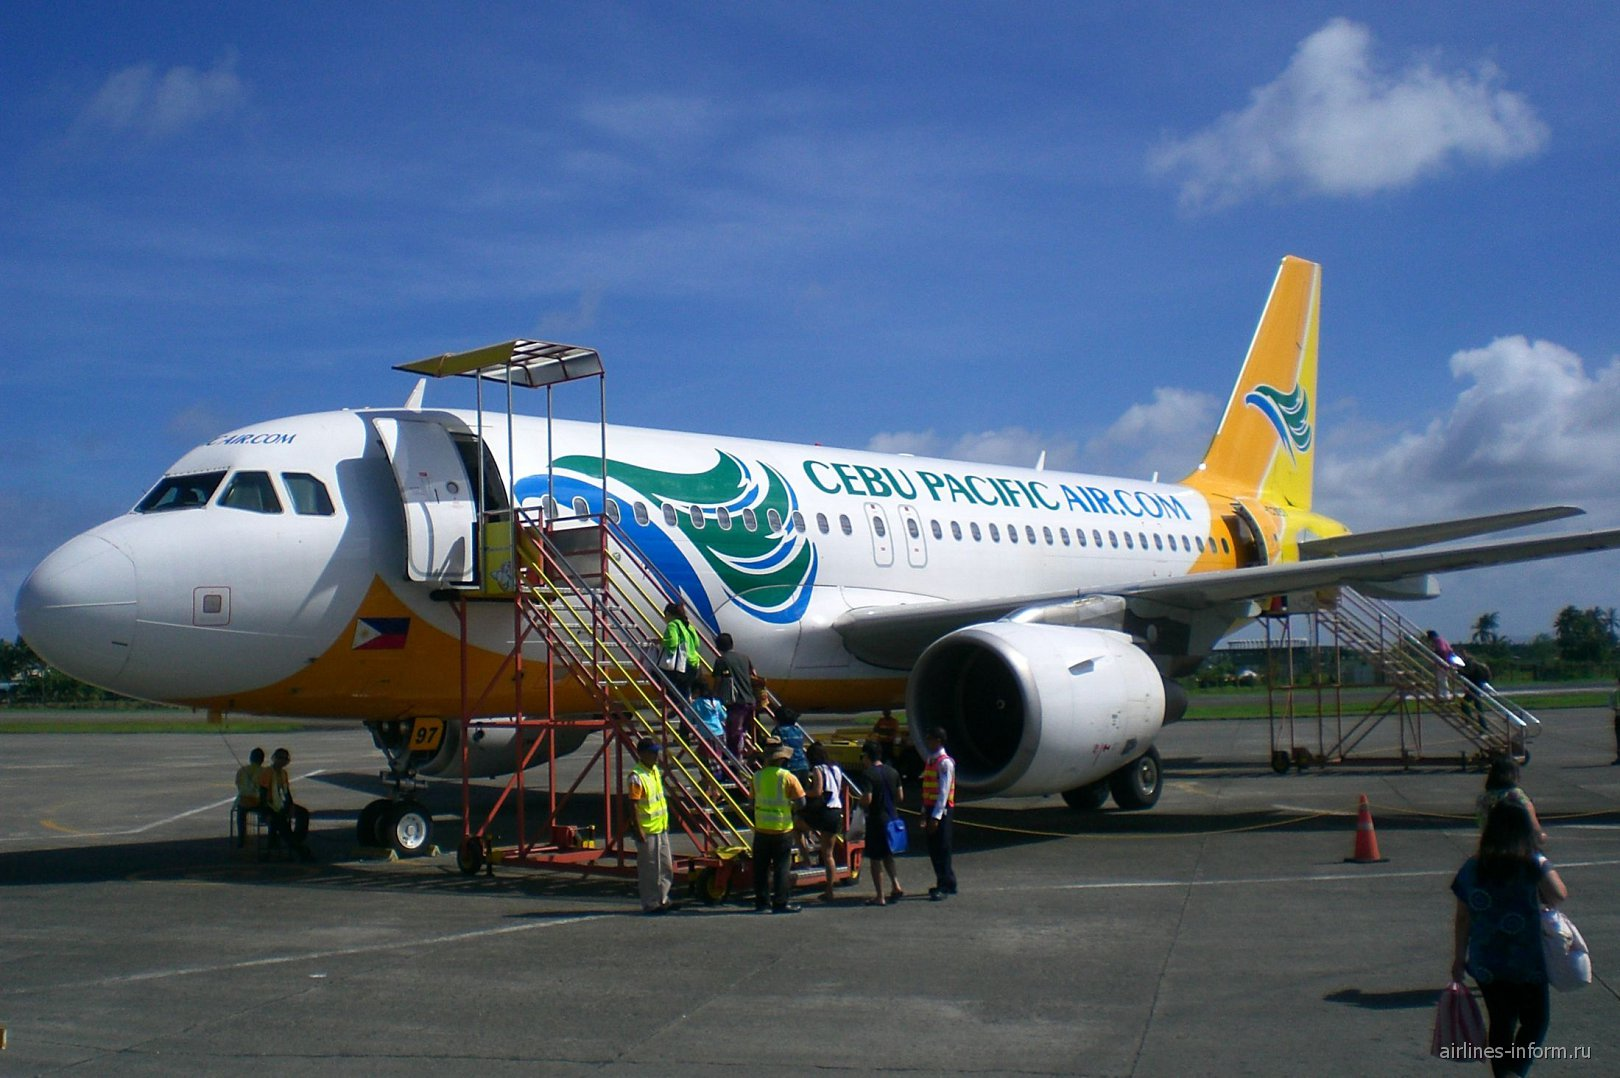 Airbus A320 авиакомпании Cebu Pacific Air в аэропорту Калибо